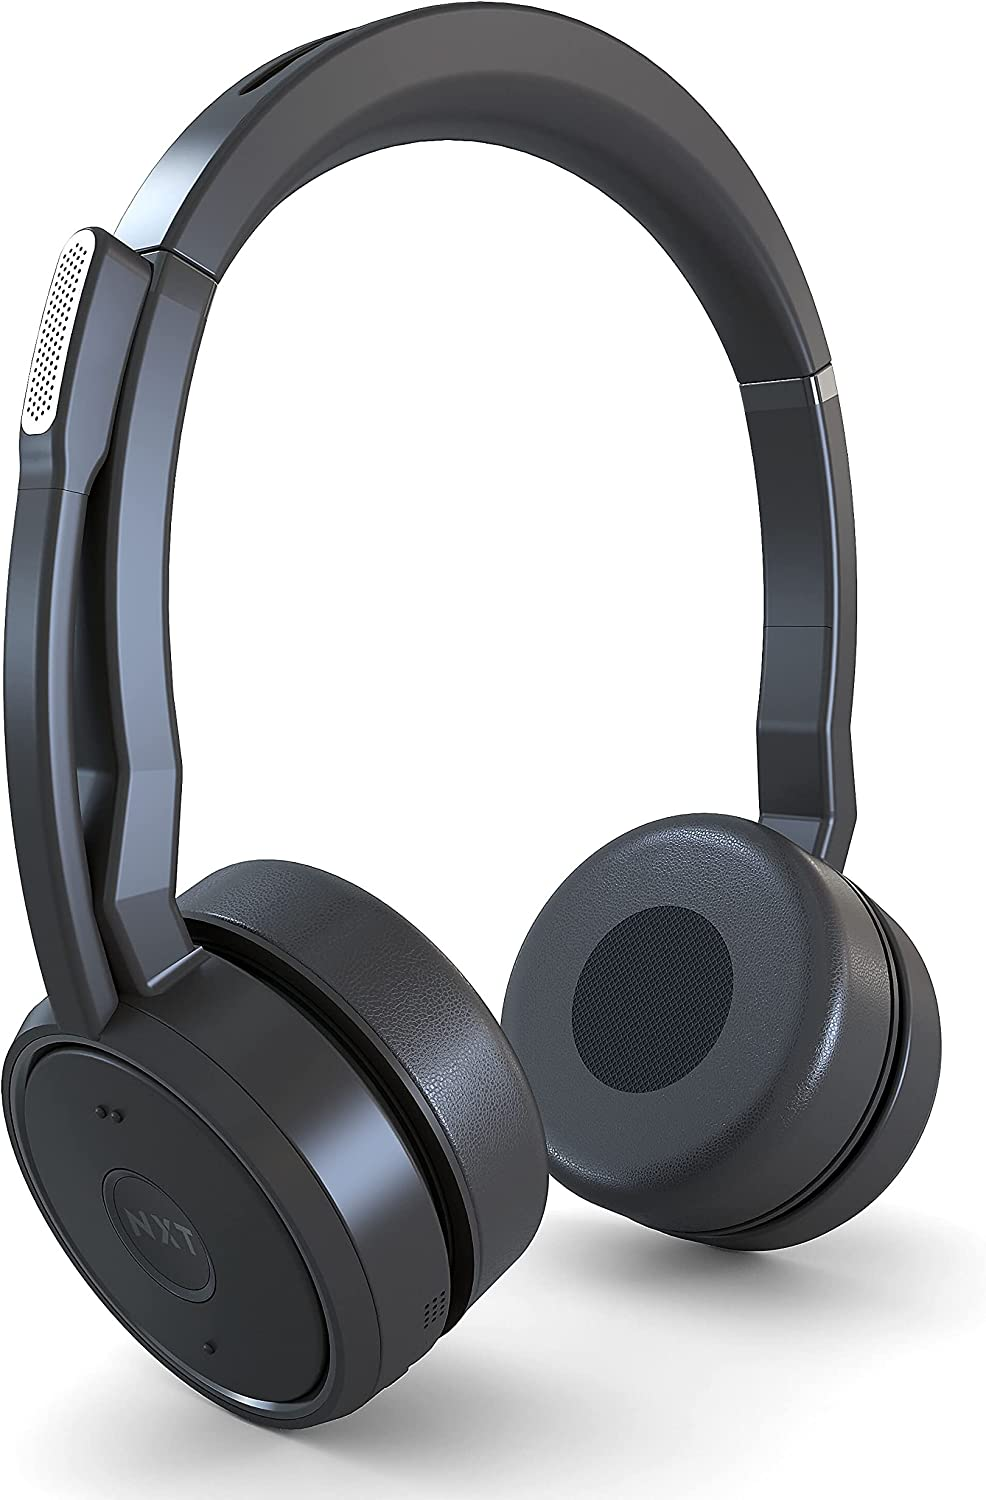 NXT Max 79% OFF Technologies UC-7000 online shop Wireless Stereo Canceling Compute Noise